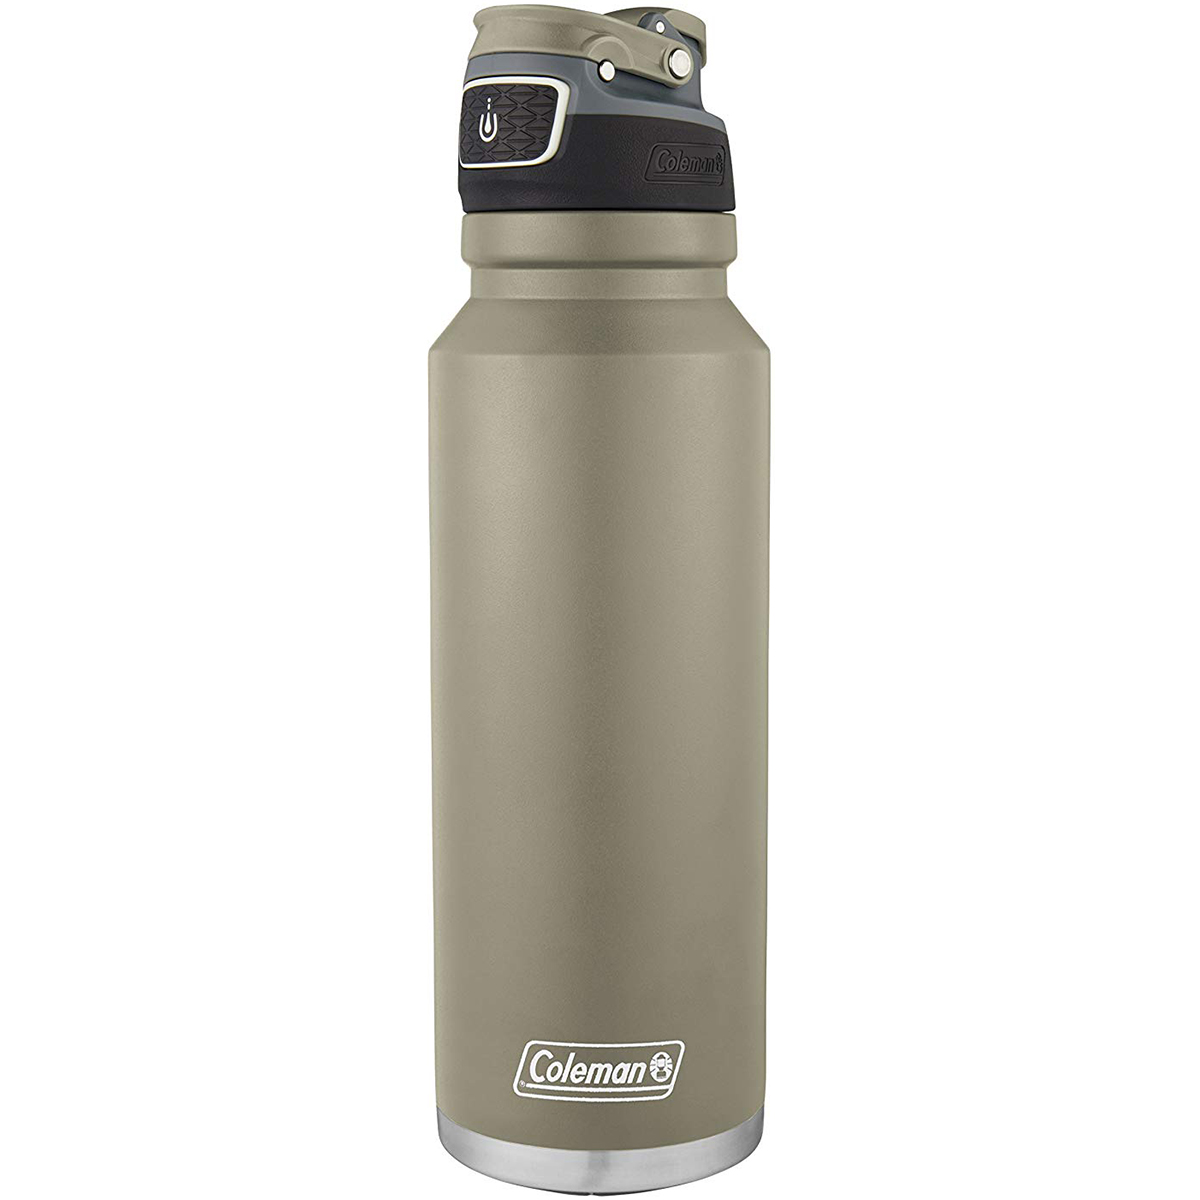 thumbnail 15 - Coleman 40 oz. Free Flow Autoseal Insulated Stainless Steel Water Bottle